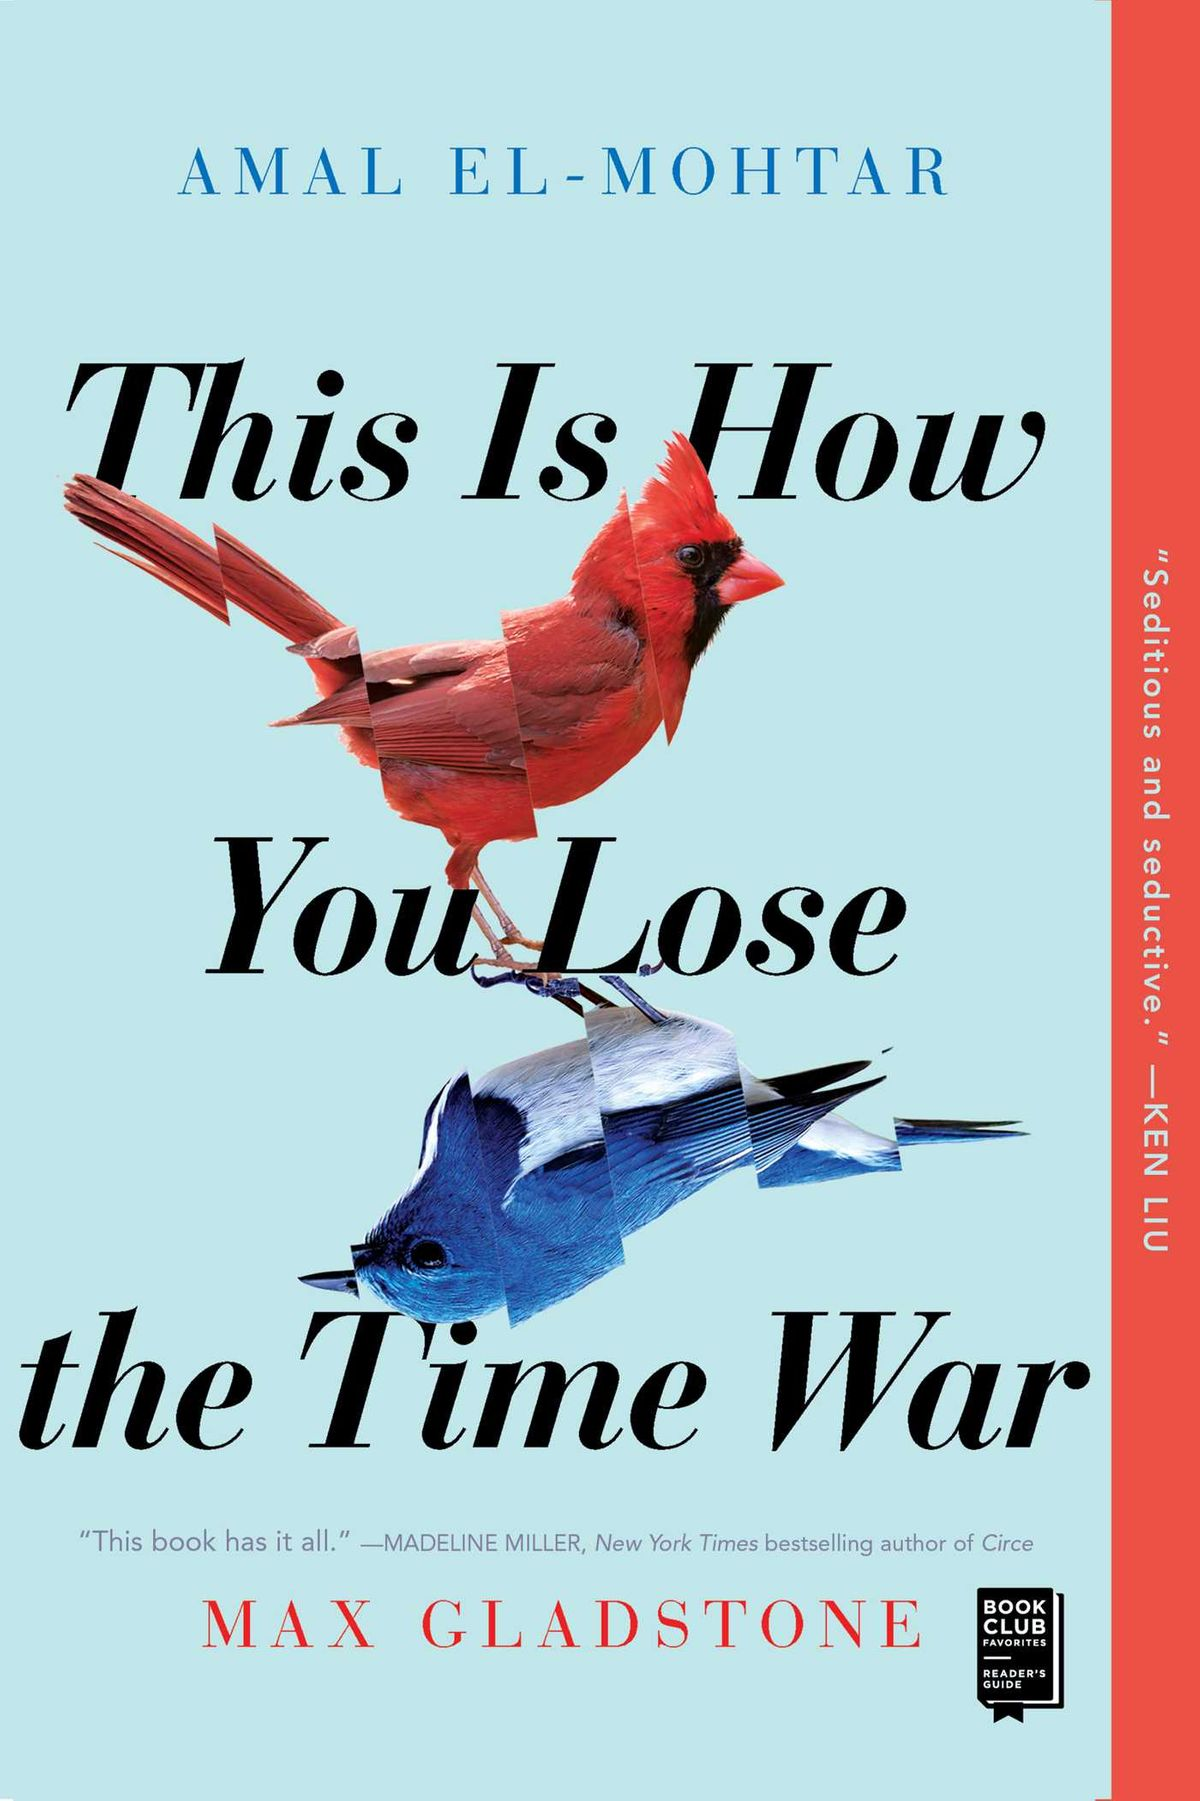 This Is How You Lose the Time War by Max Gladstone, Amal El-Mohtar